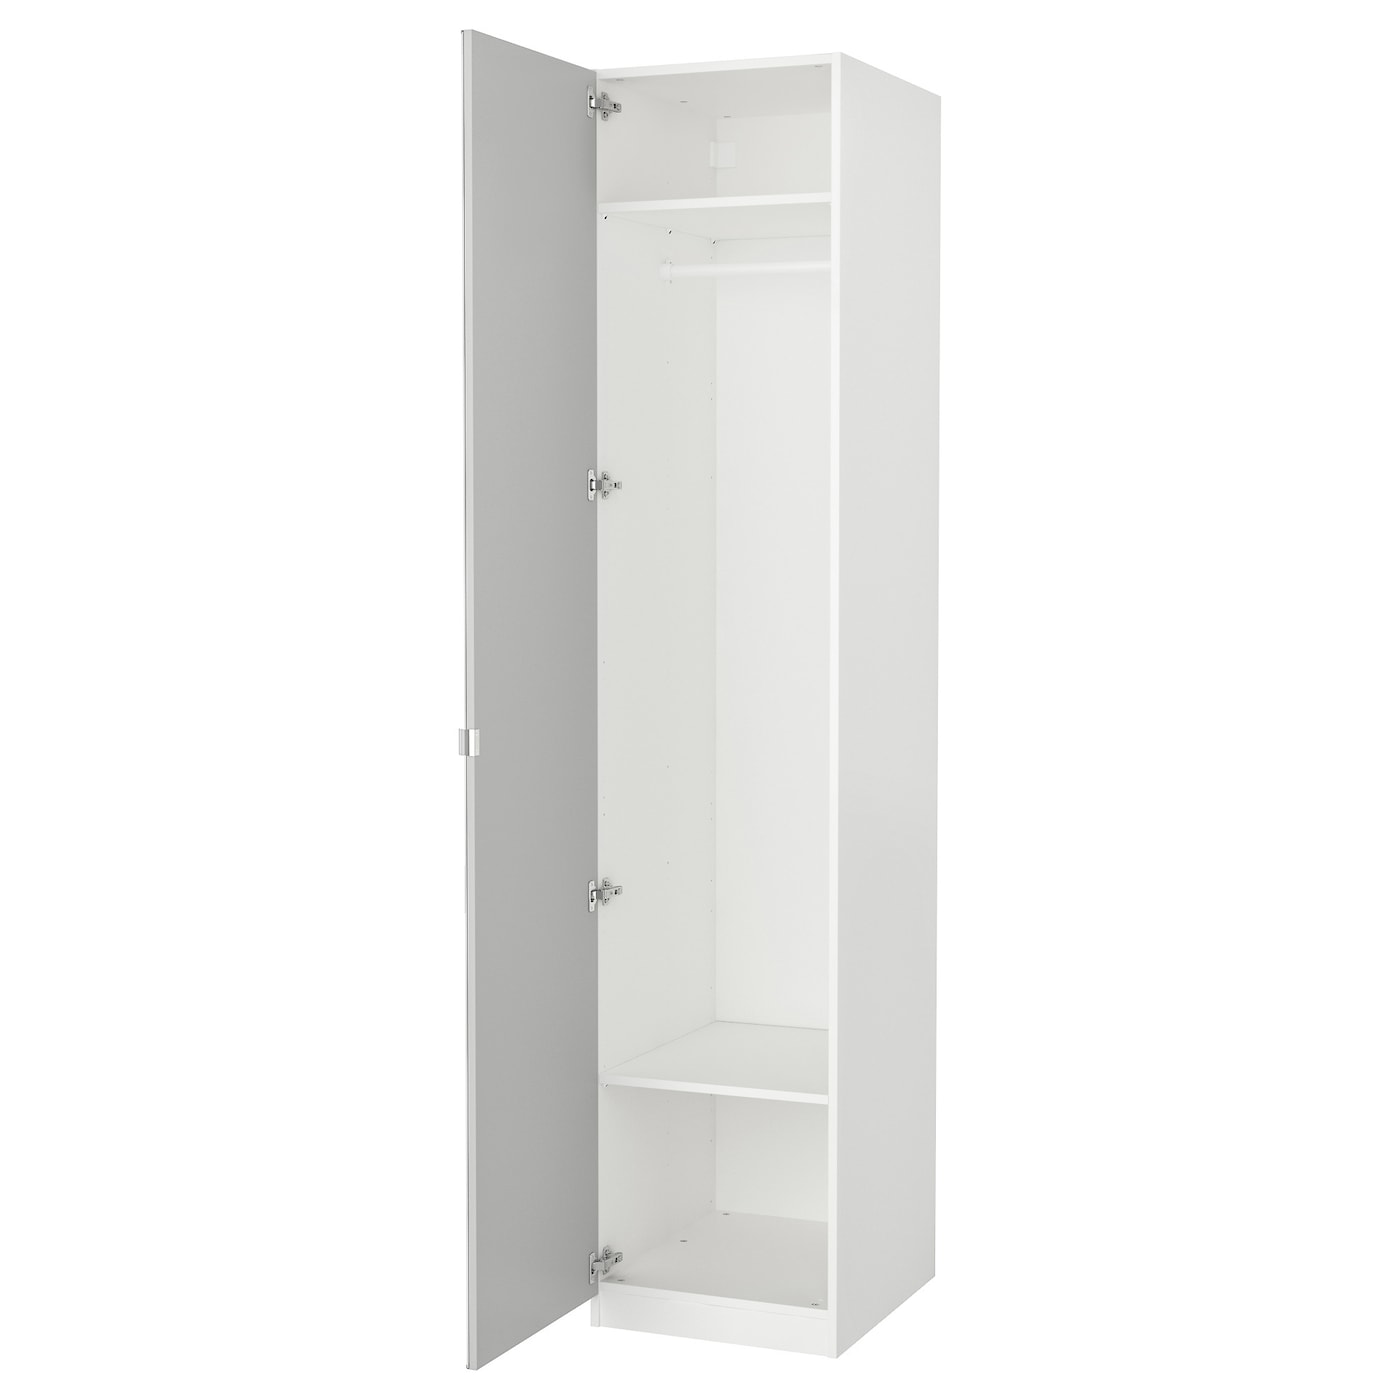 Pax wardrobe white vikedal mirror glass 50x60x236 cm ikea for Porte miroir ikea